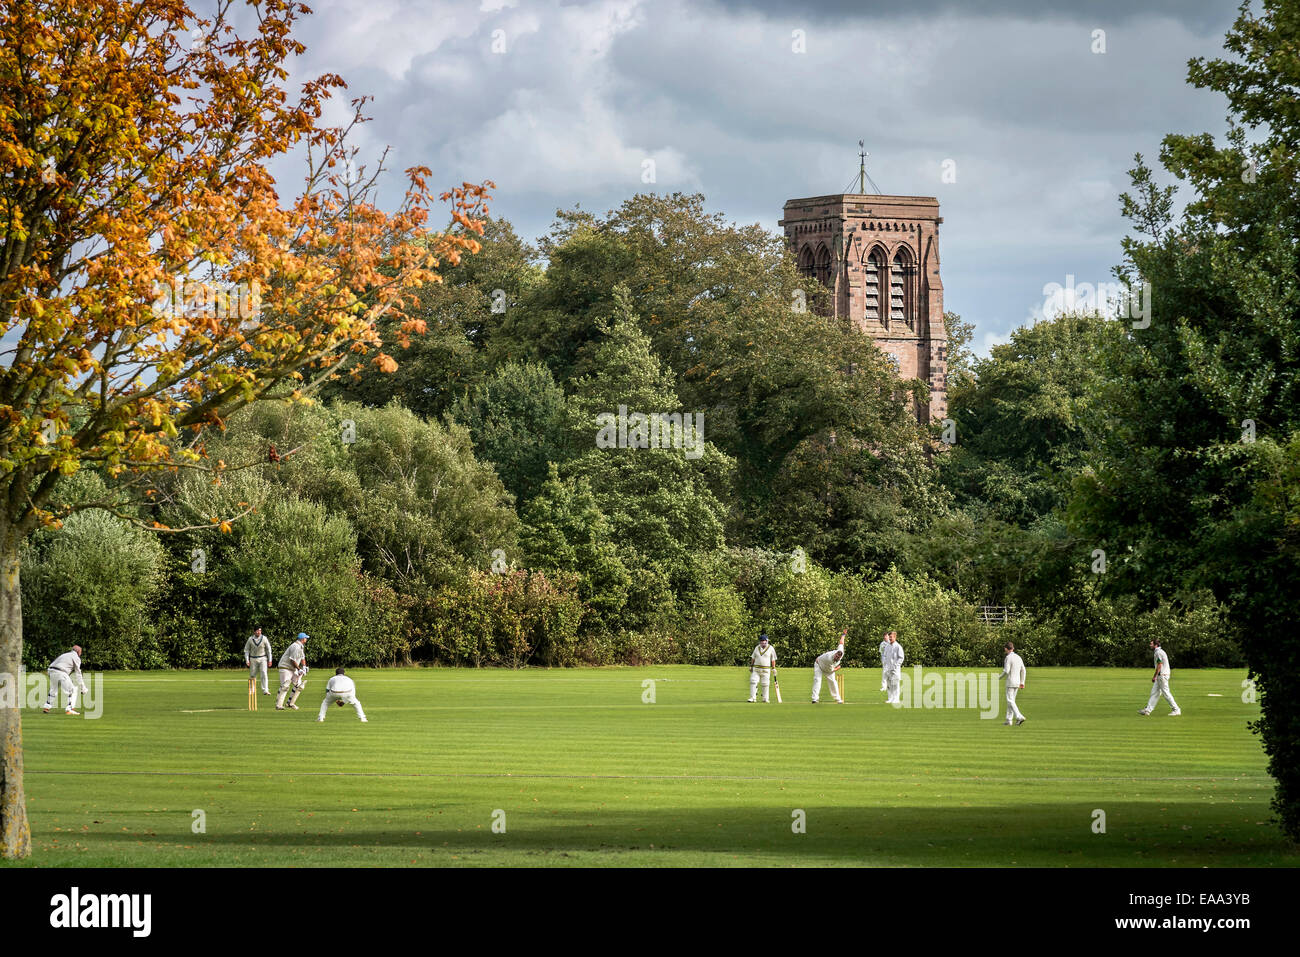 Stretton cricket club match. Cheshire Warrington North West England. - Stock Image